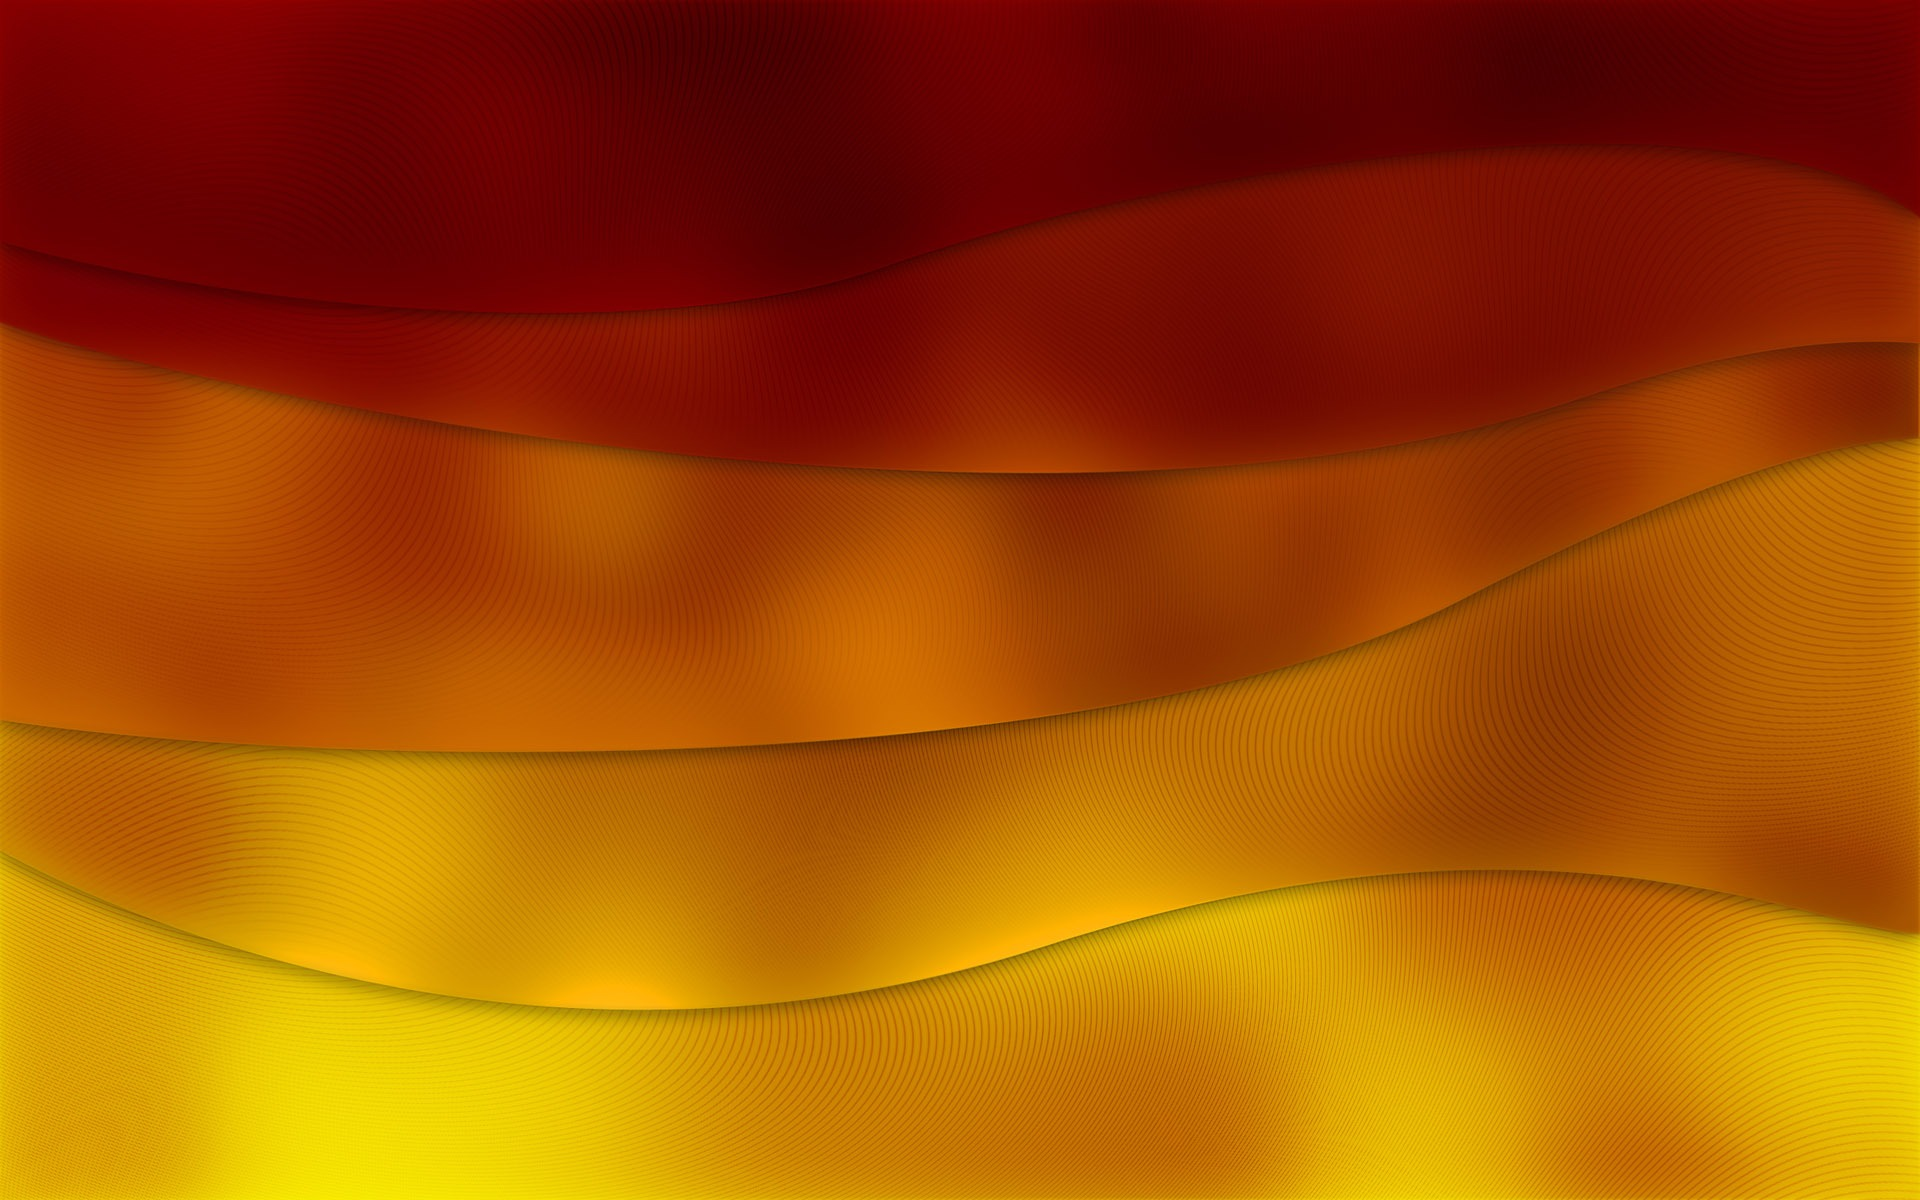 bright color background wallpaper maroon and gold background 1645823 hd wallpaper backgrounds download bright color background wallpaper